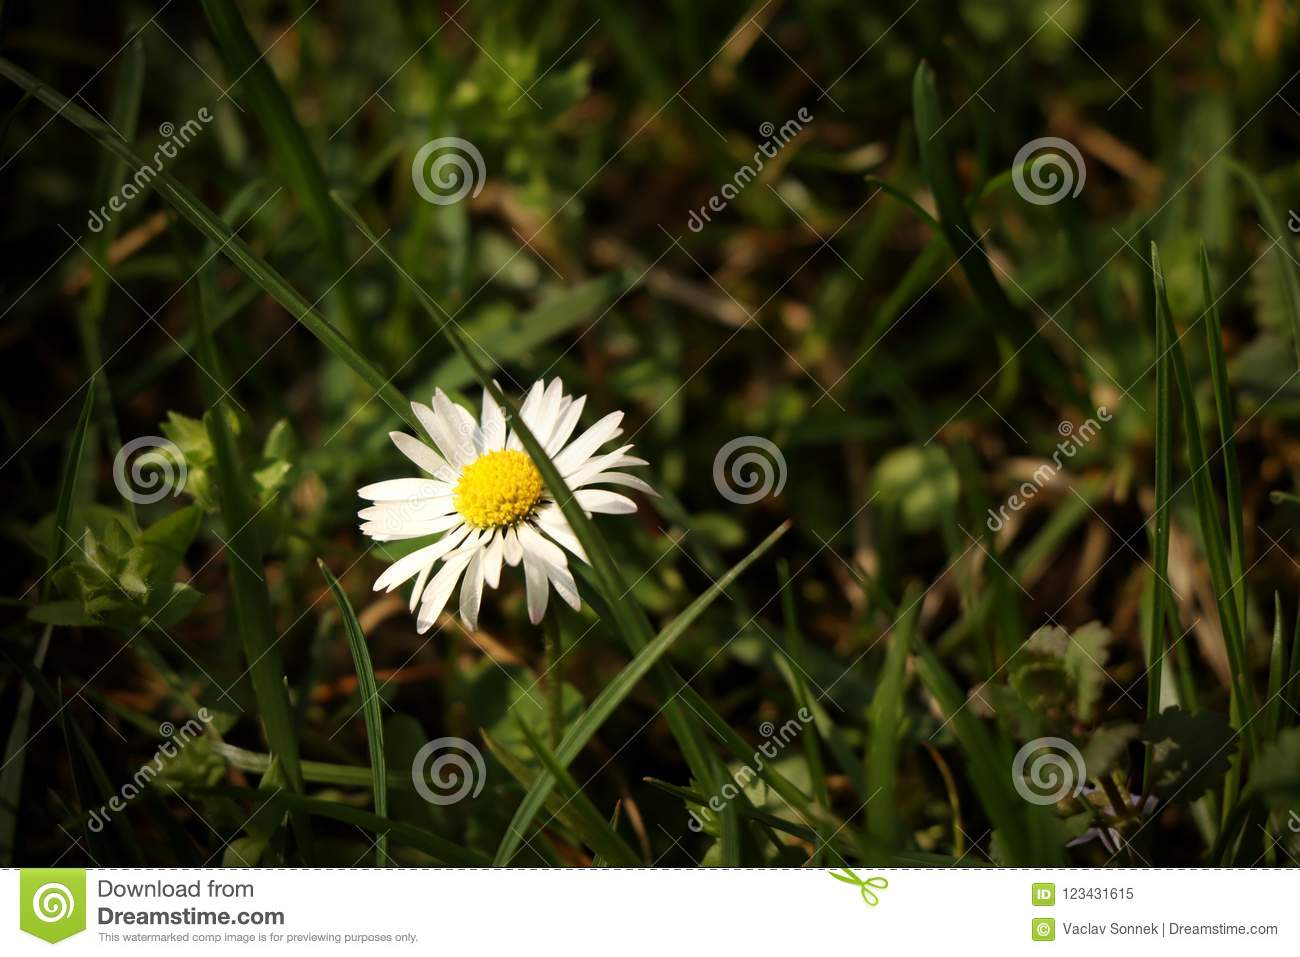 A beautiful lawn daisy in the middle of grassland. Very nice present for mother or for decoration to your house